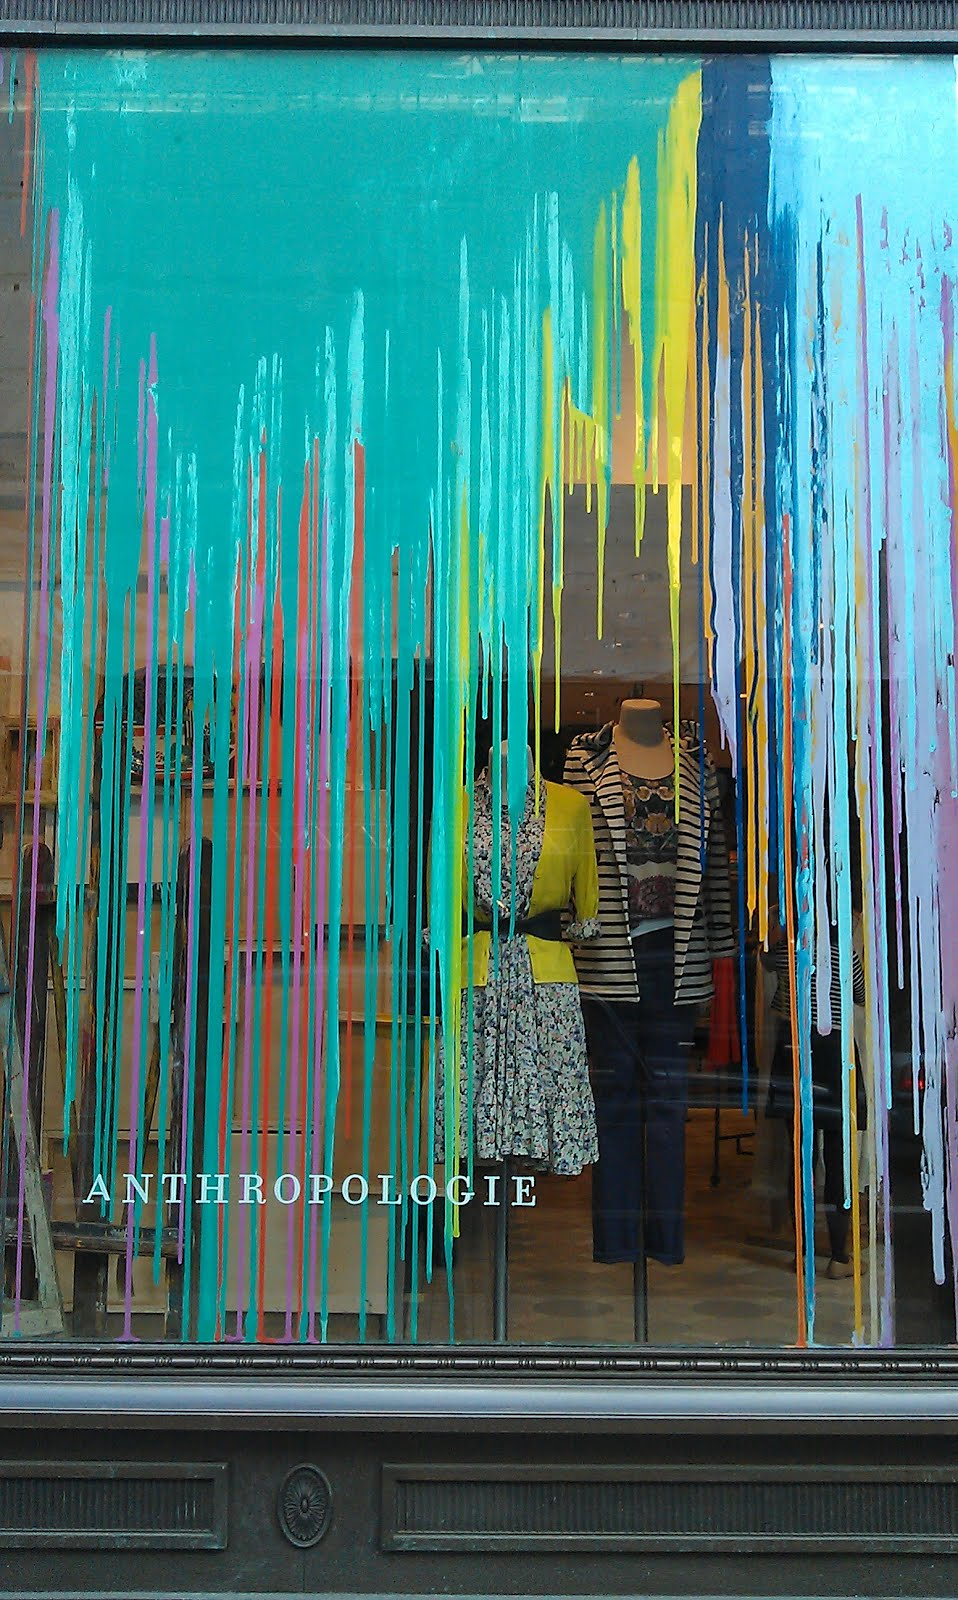 Made In A Window: Anthropologie get a paint job